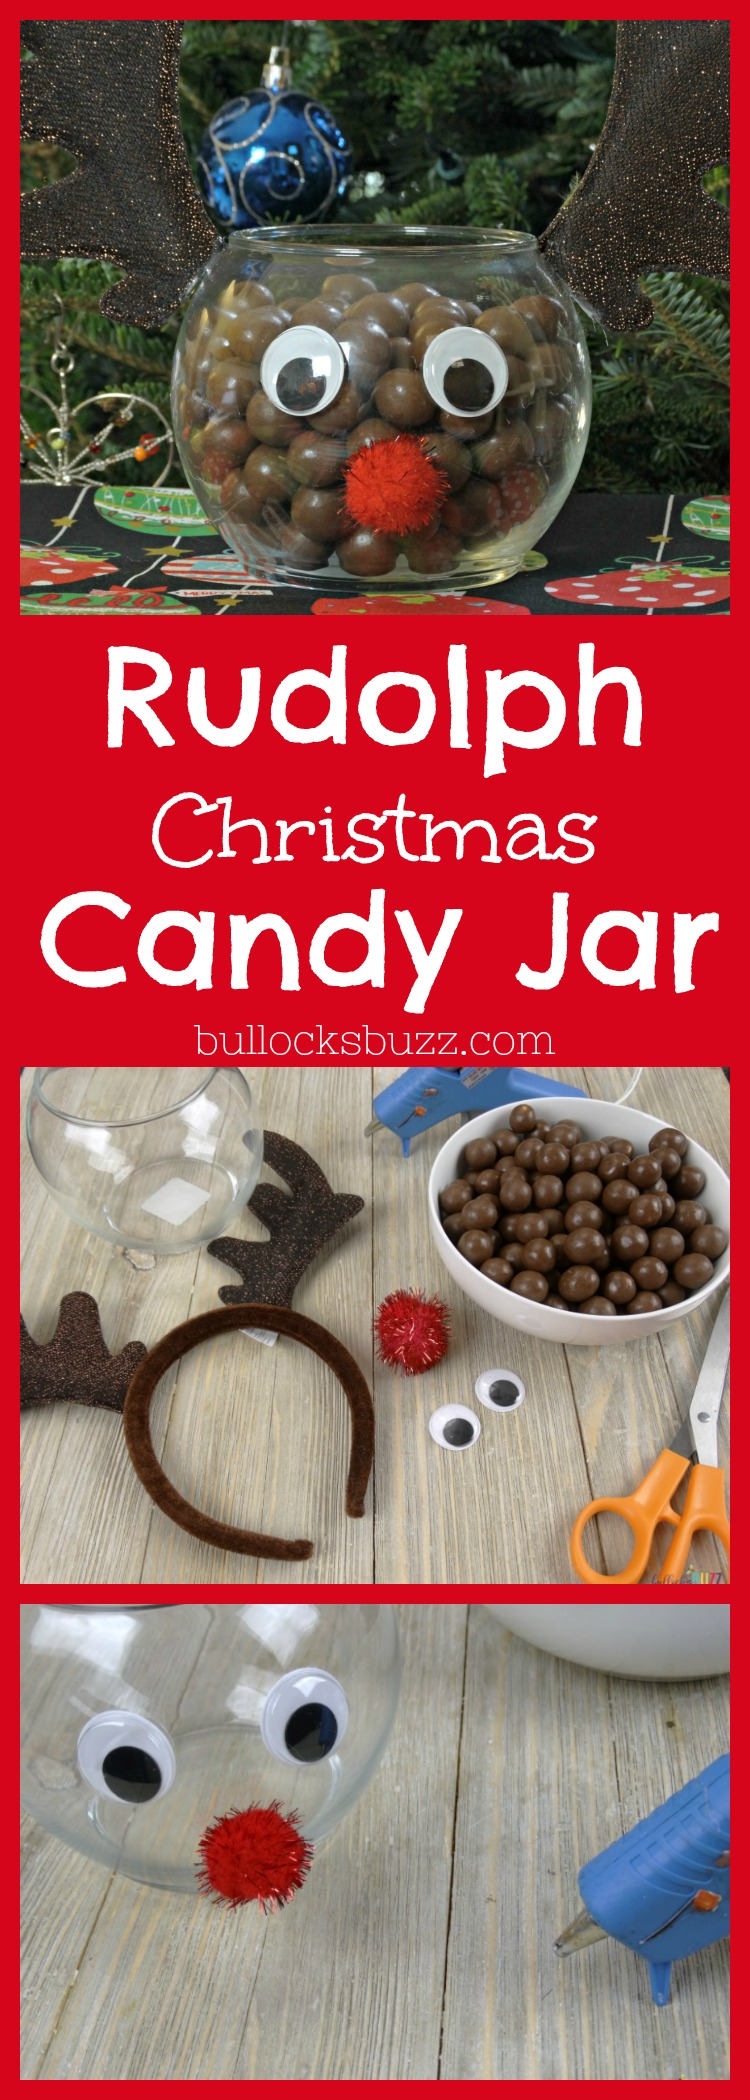 An adorable Rudolph Christmas Candy Jar that is filled with chocolate covered malt balls, takes just minutes to make and costs less than $5! It's the perfect addition to your holiday decor, or as part of a holiday candy bar, and even makes a sweet little gift!